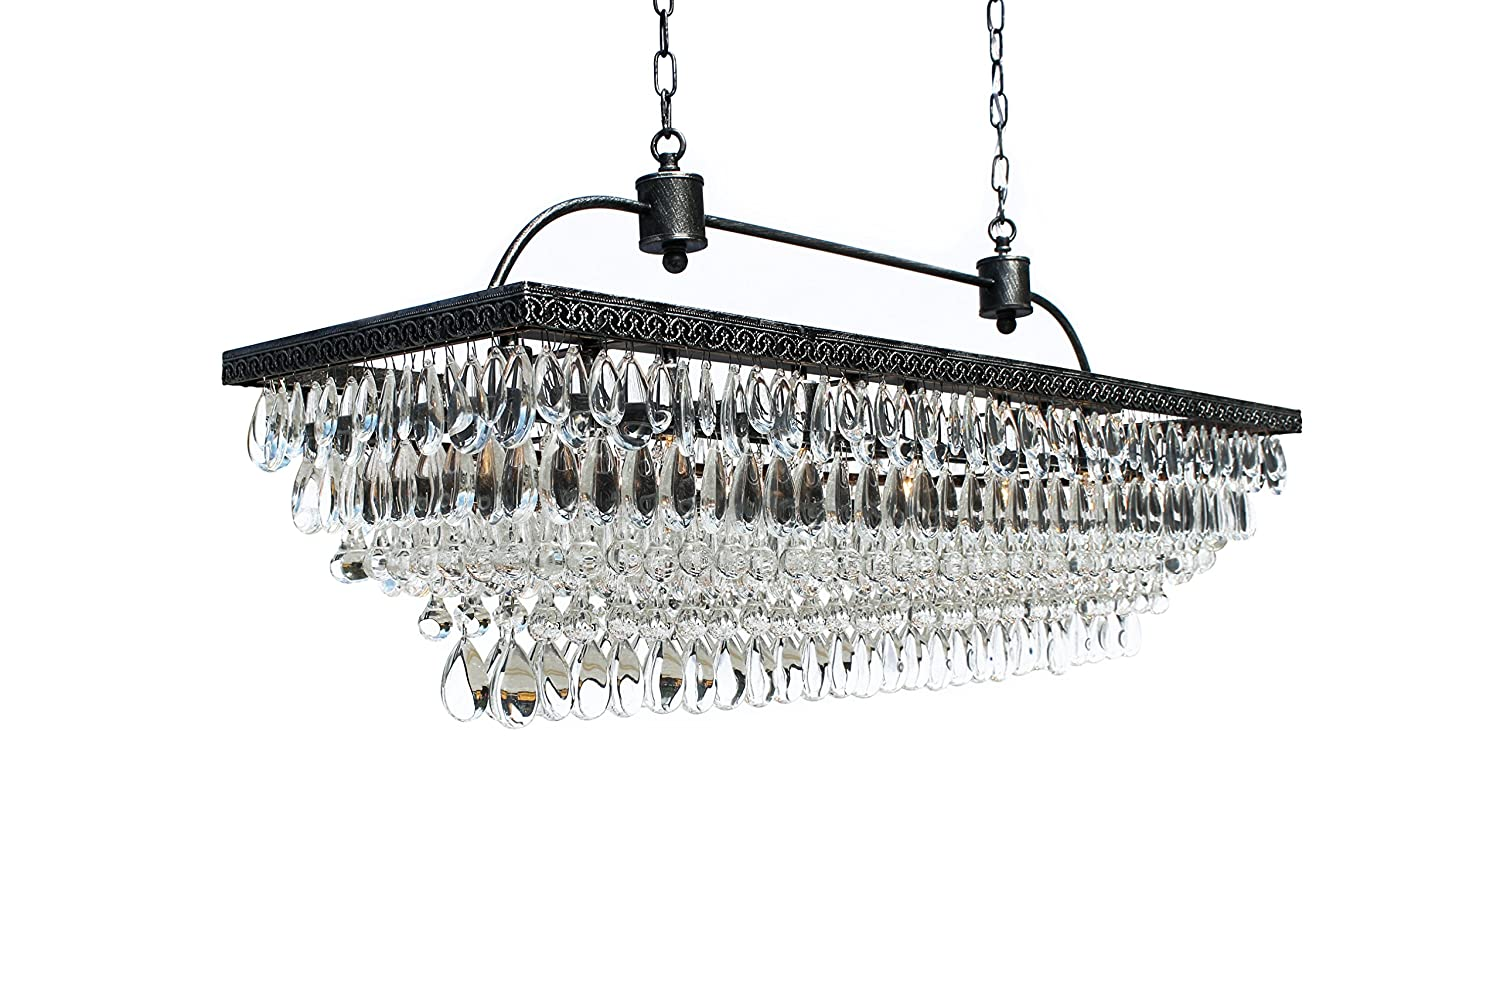 The weston 40 inch rectangular glass drop crystal chandelier the weston 40 inch rectangular glass drop crystal chandelier antique silver amazon mozeypictures Images